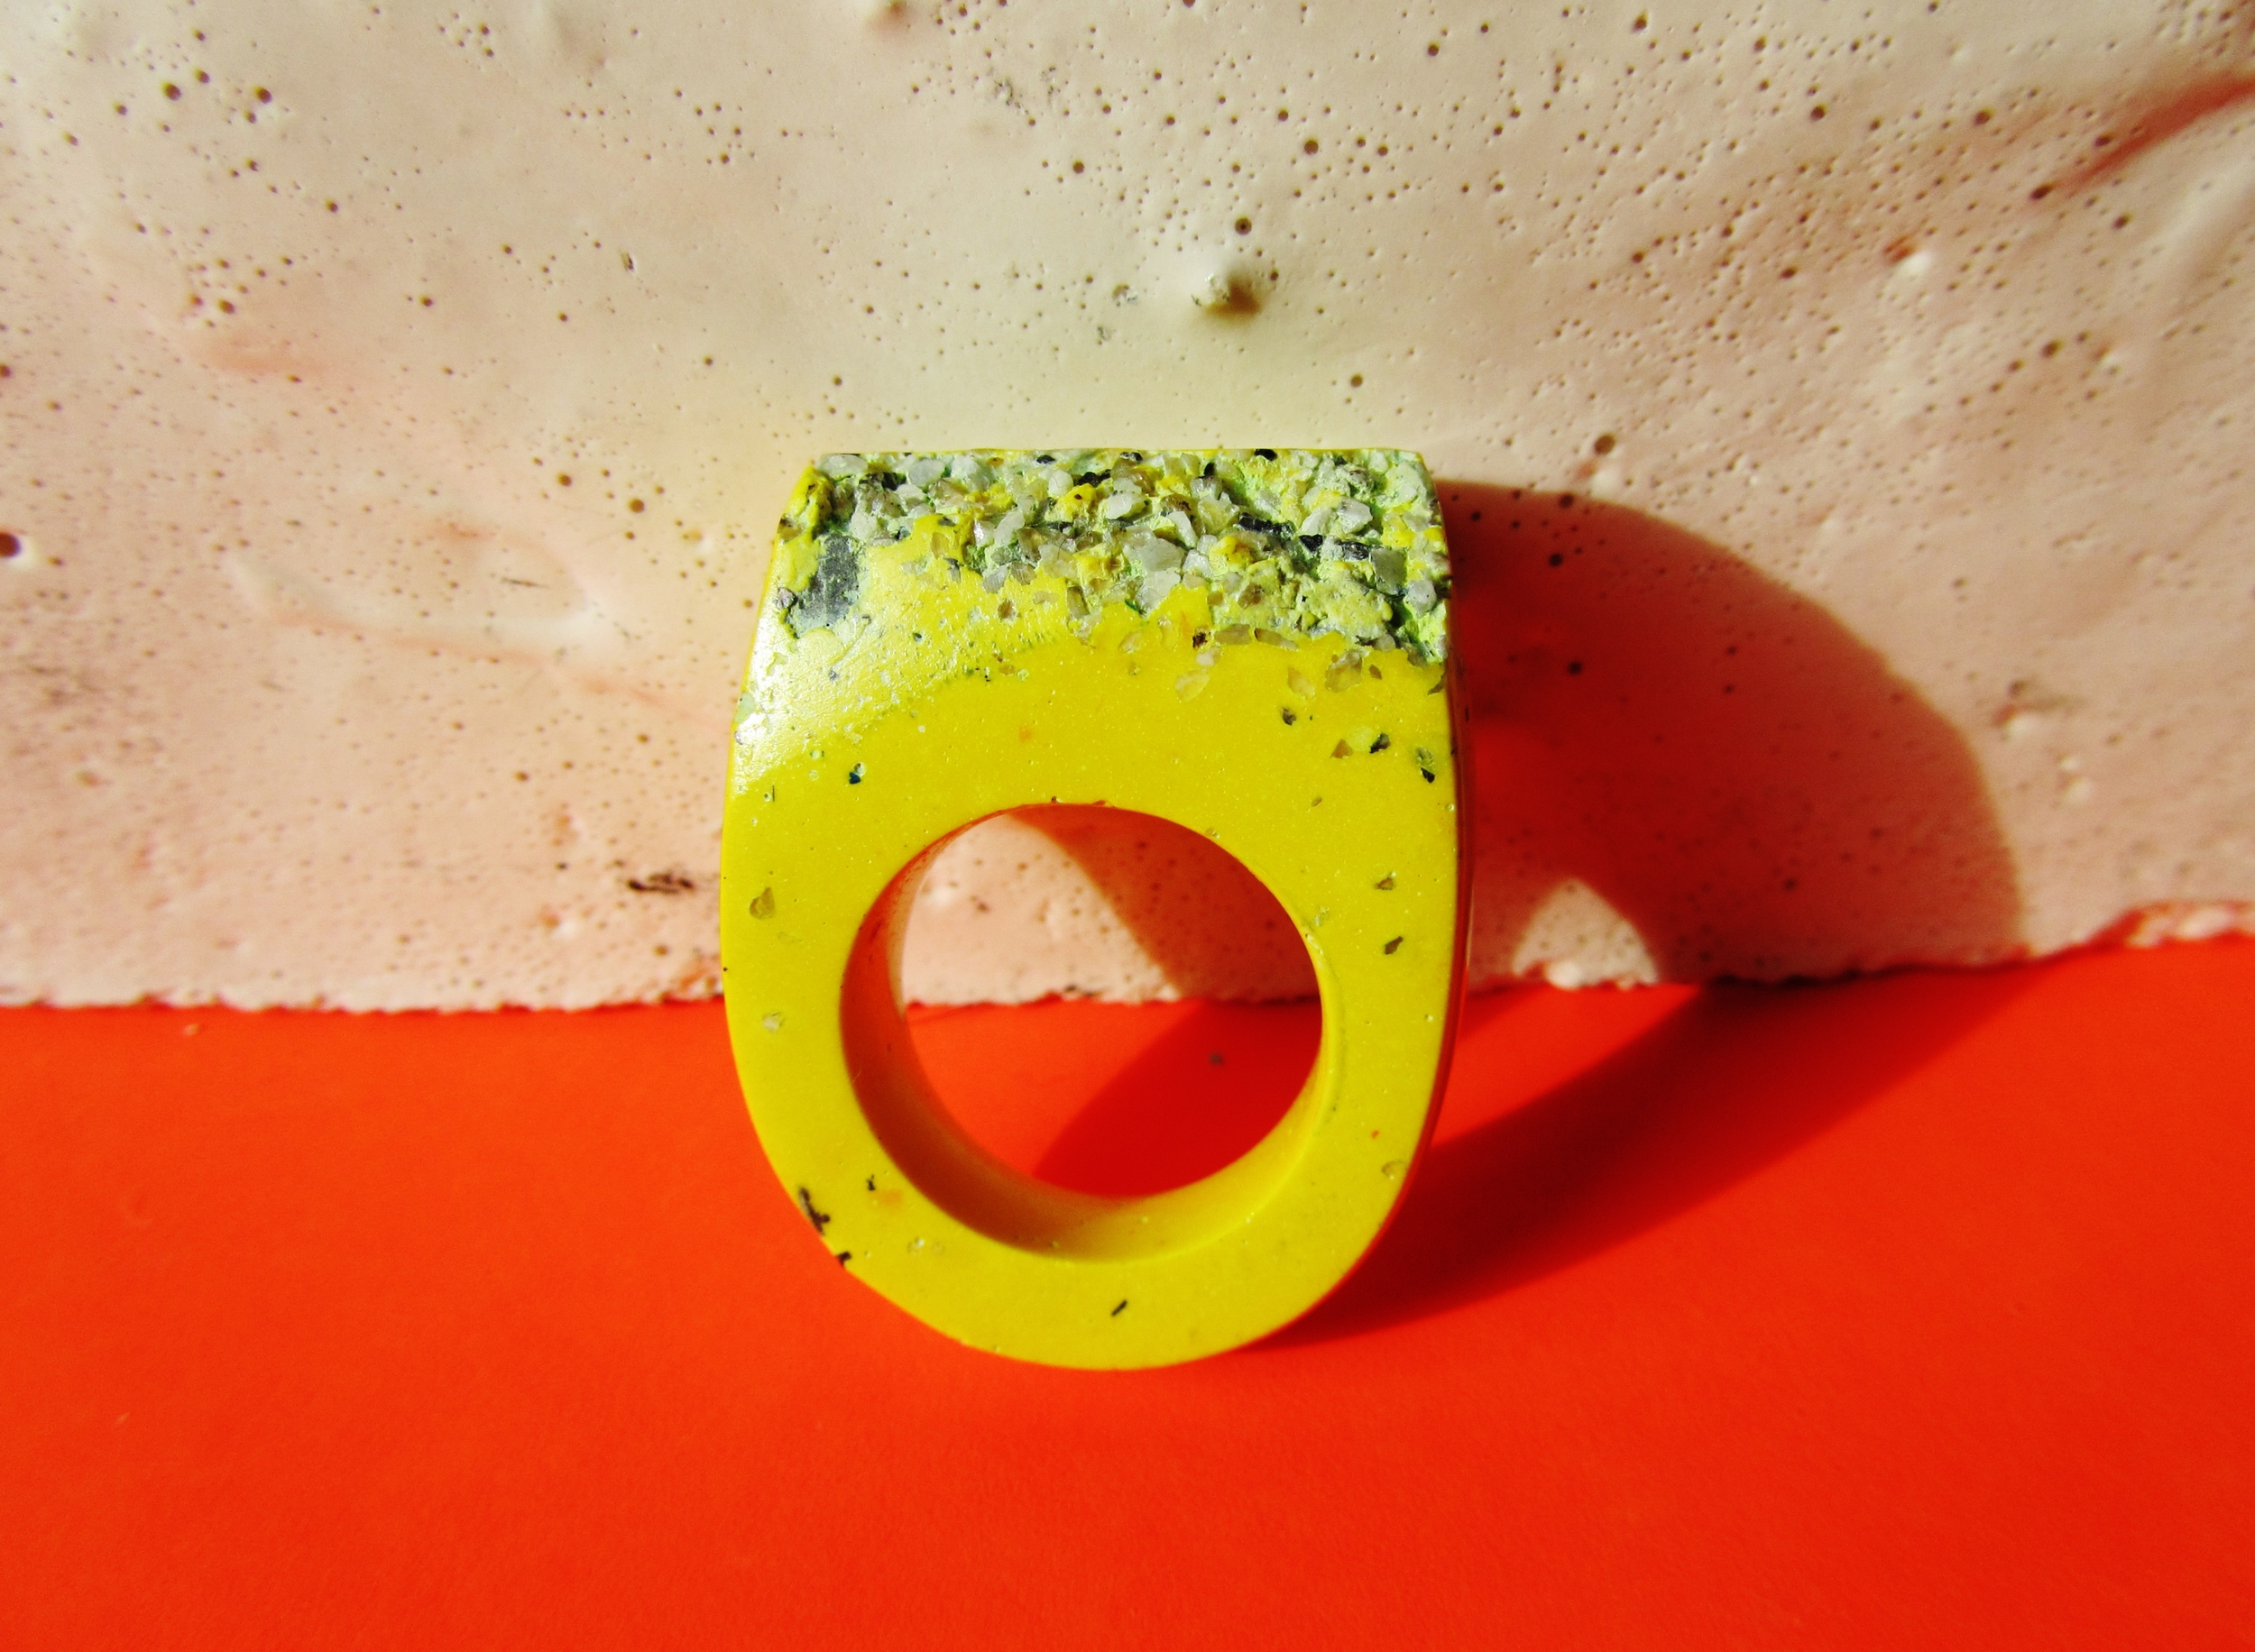 For this bright yellow ring I've used granite for a rugged edge.